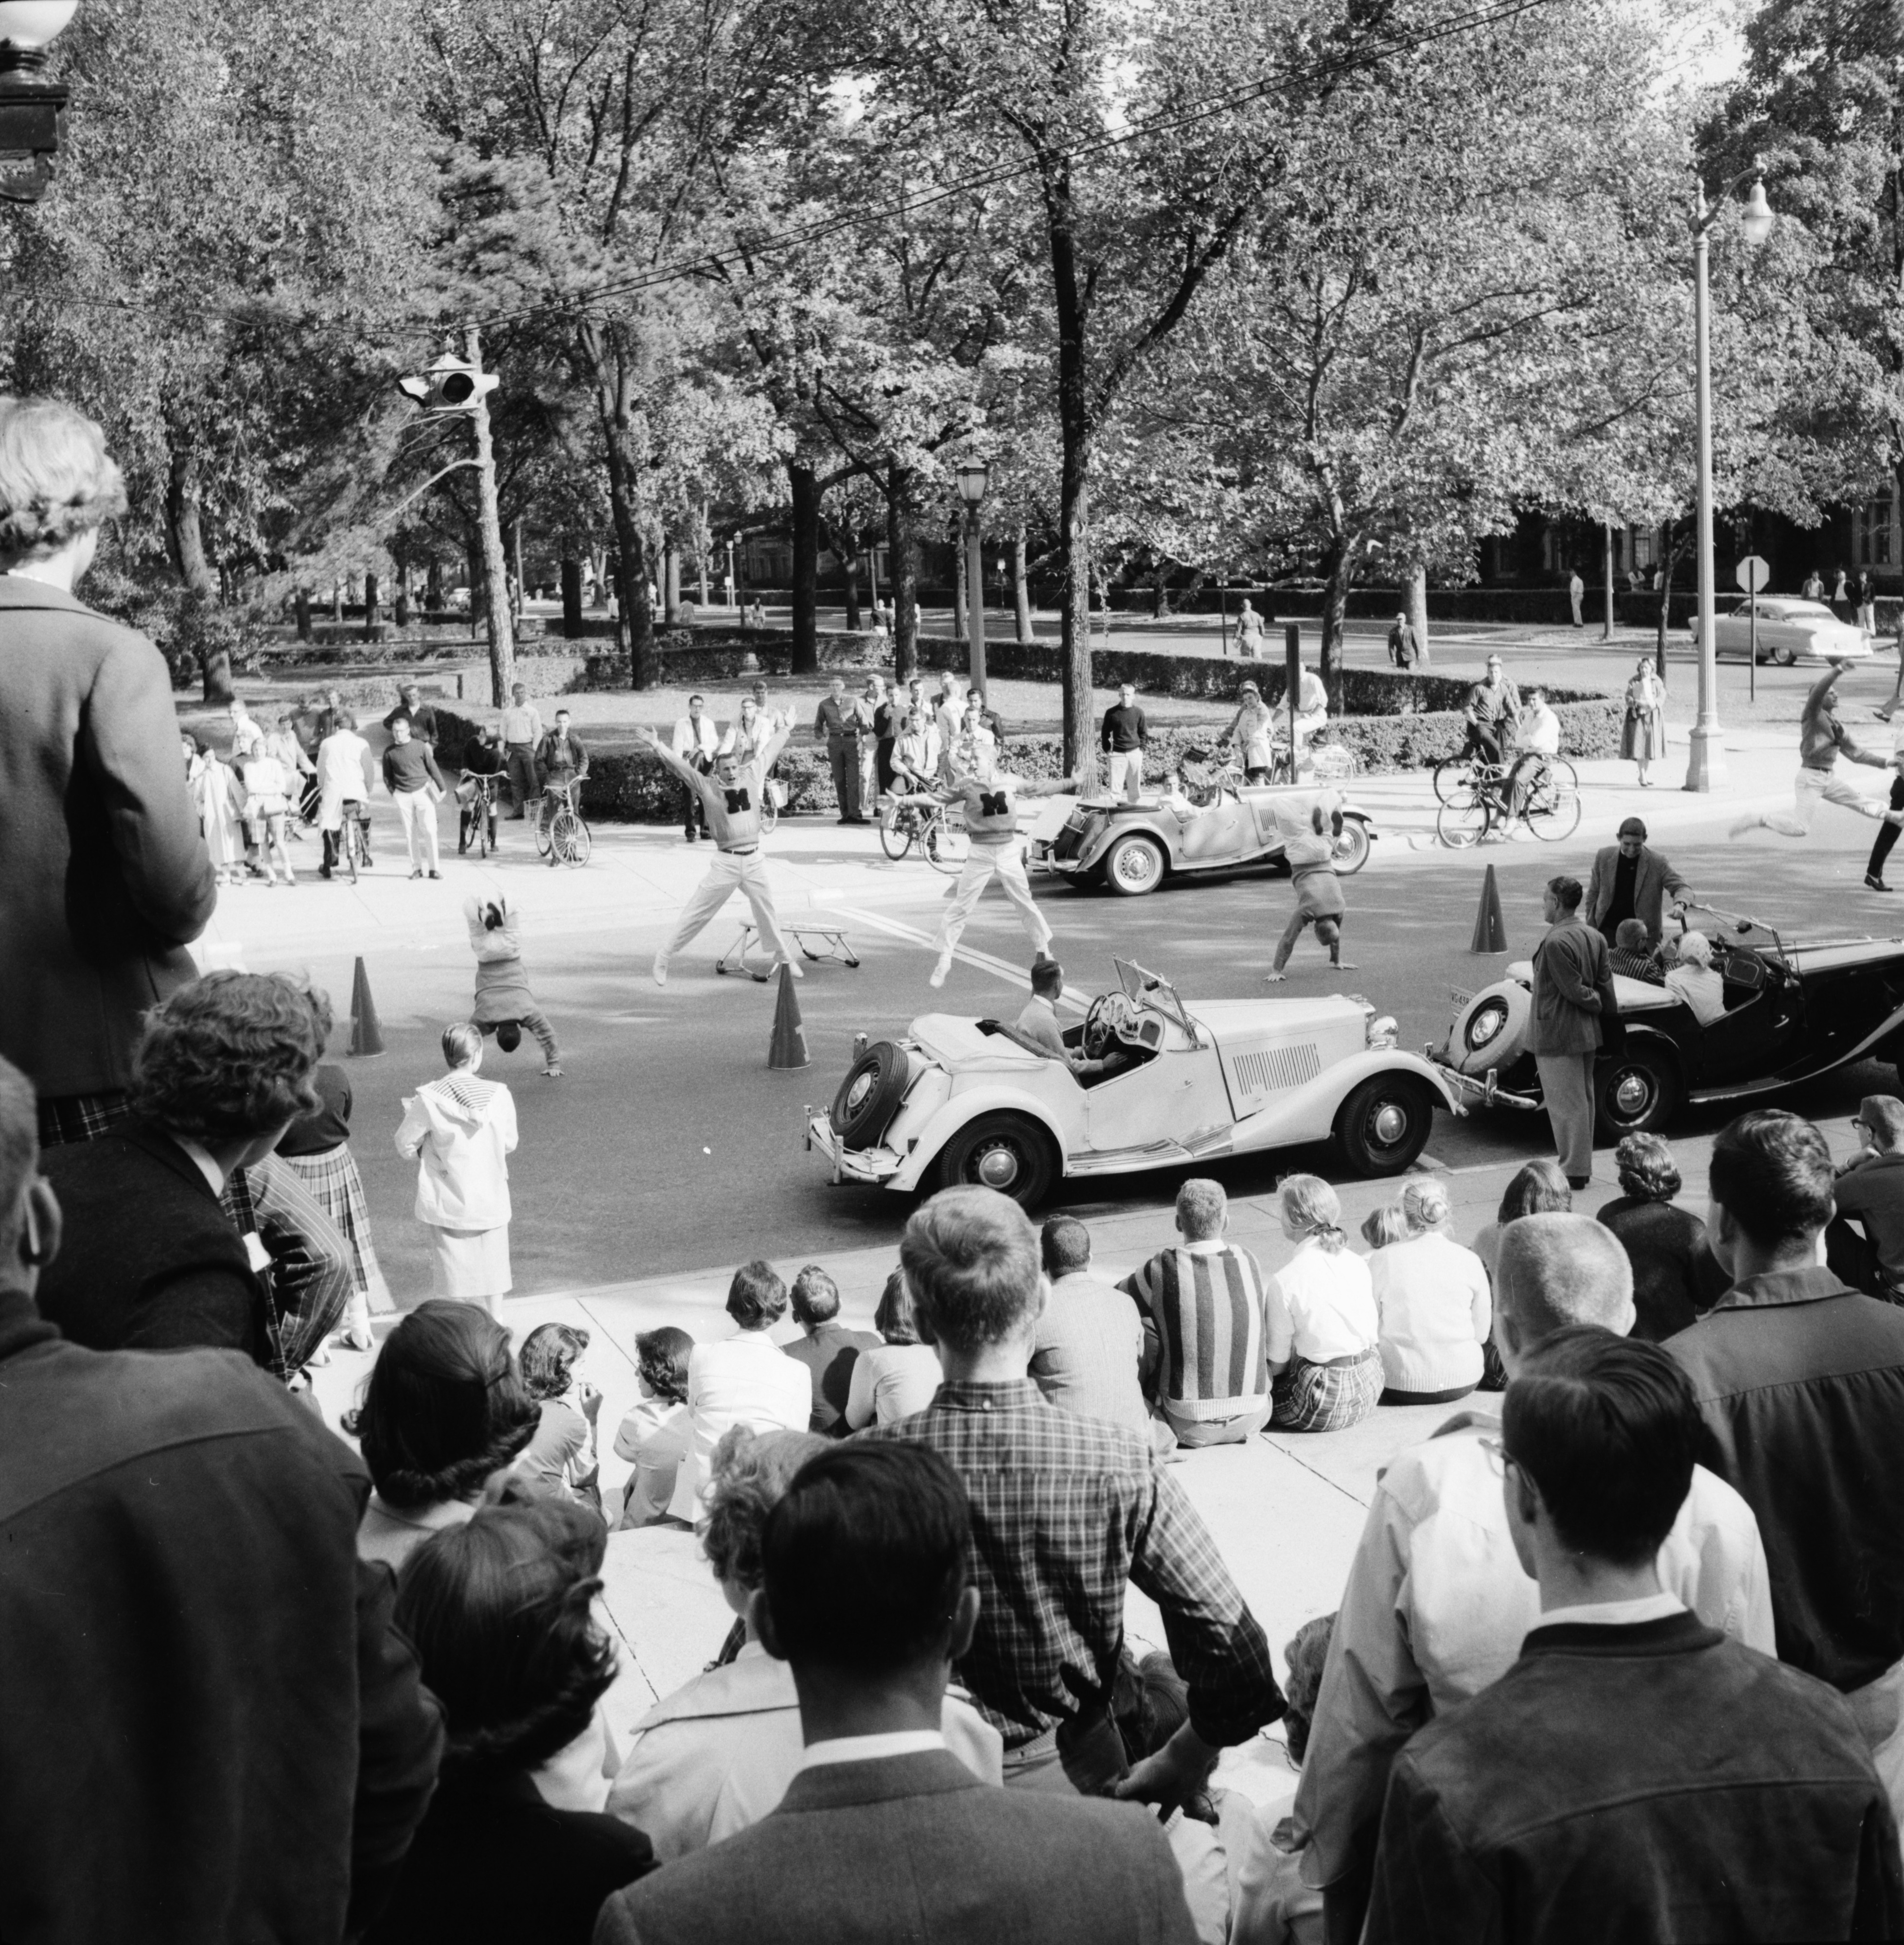 Pep rally before U-M football game, 1958 image